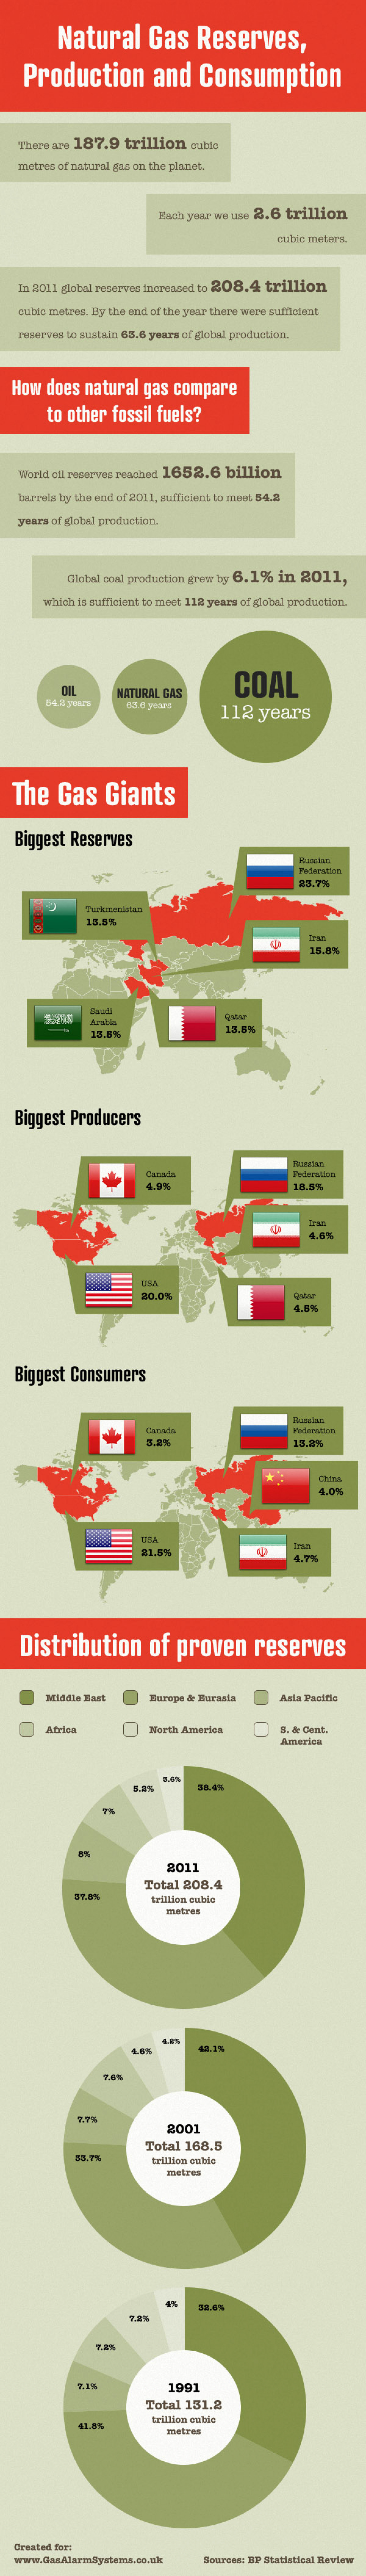 Natural Gas Reserves, Production and Consumption Infographic